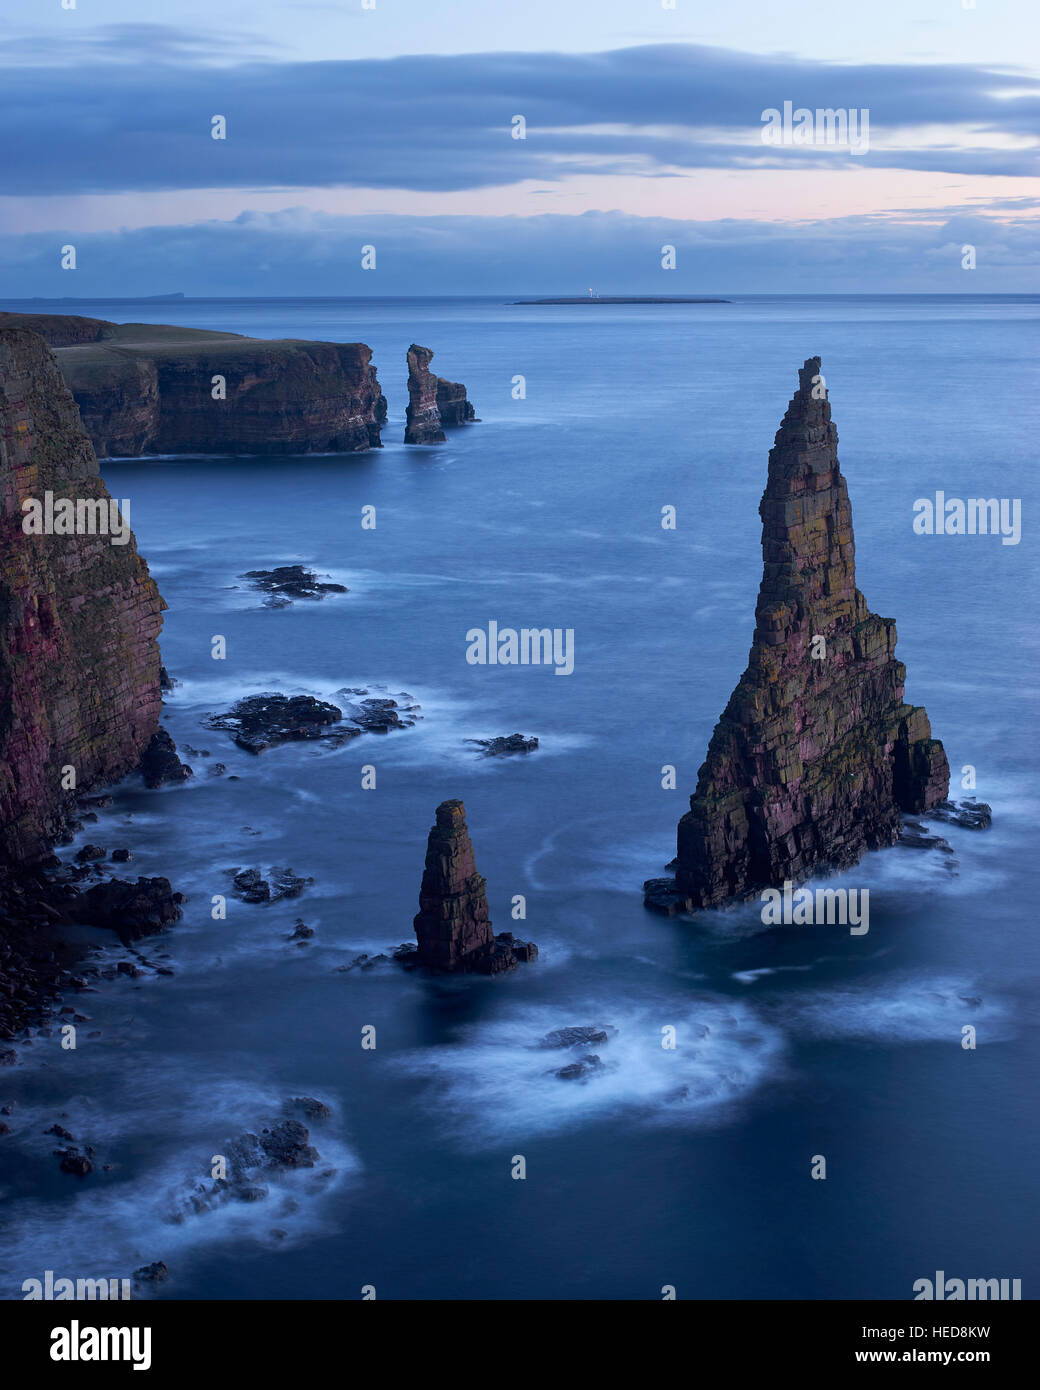 Stacks of Duncansby, Caithness, Scotland - Stock Image